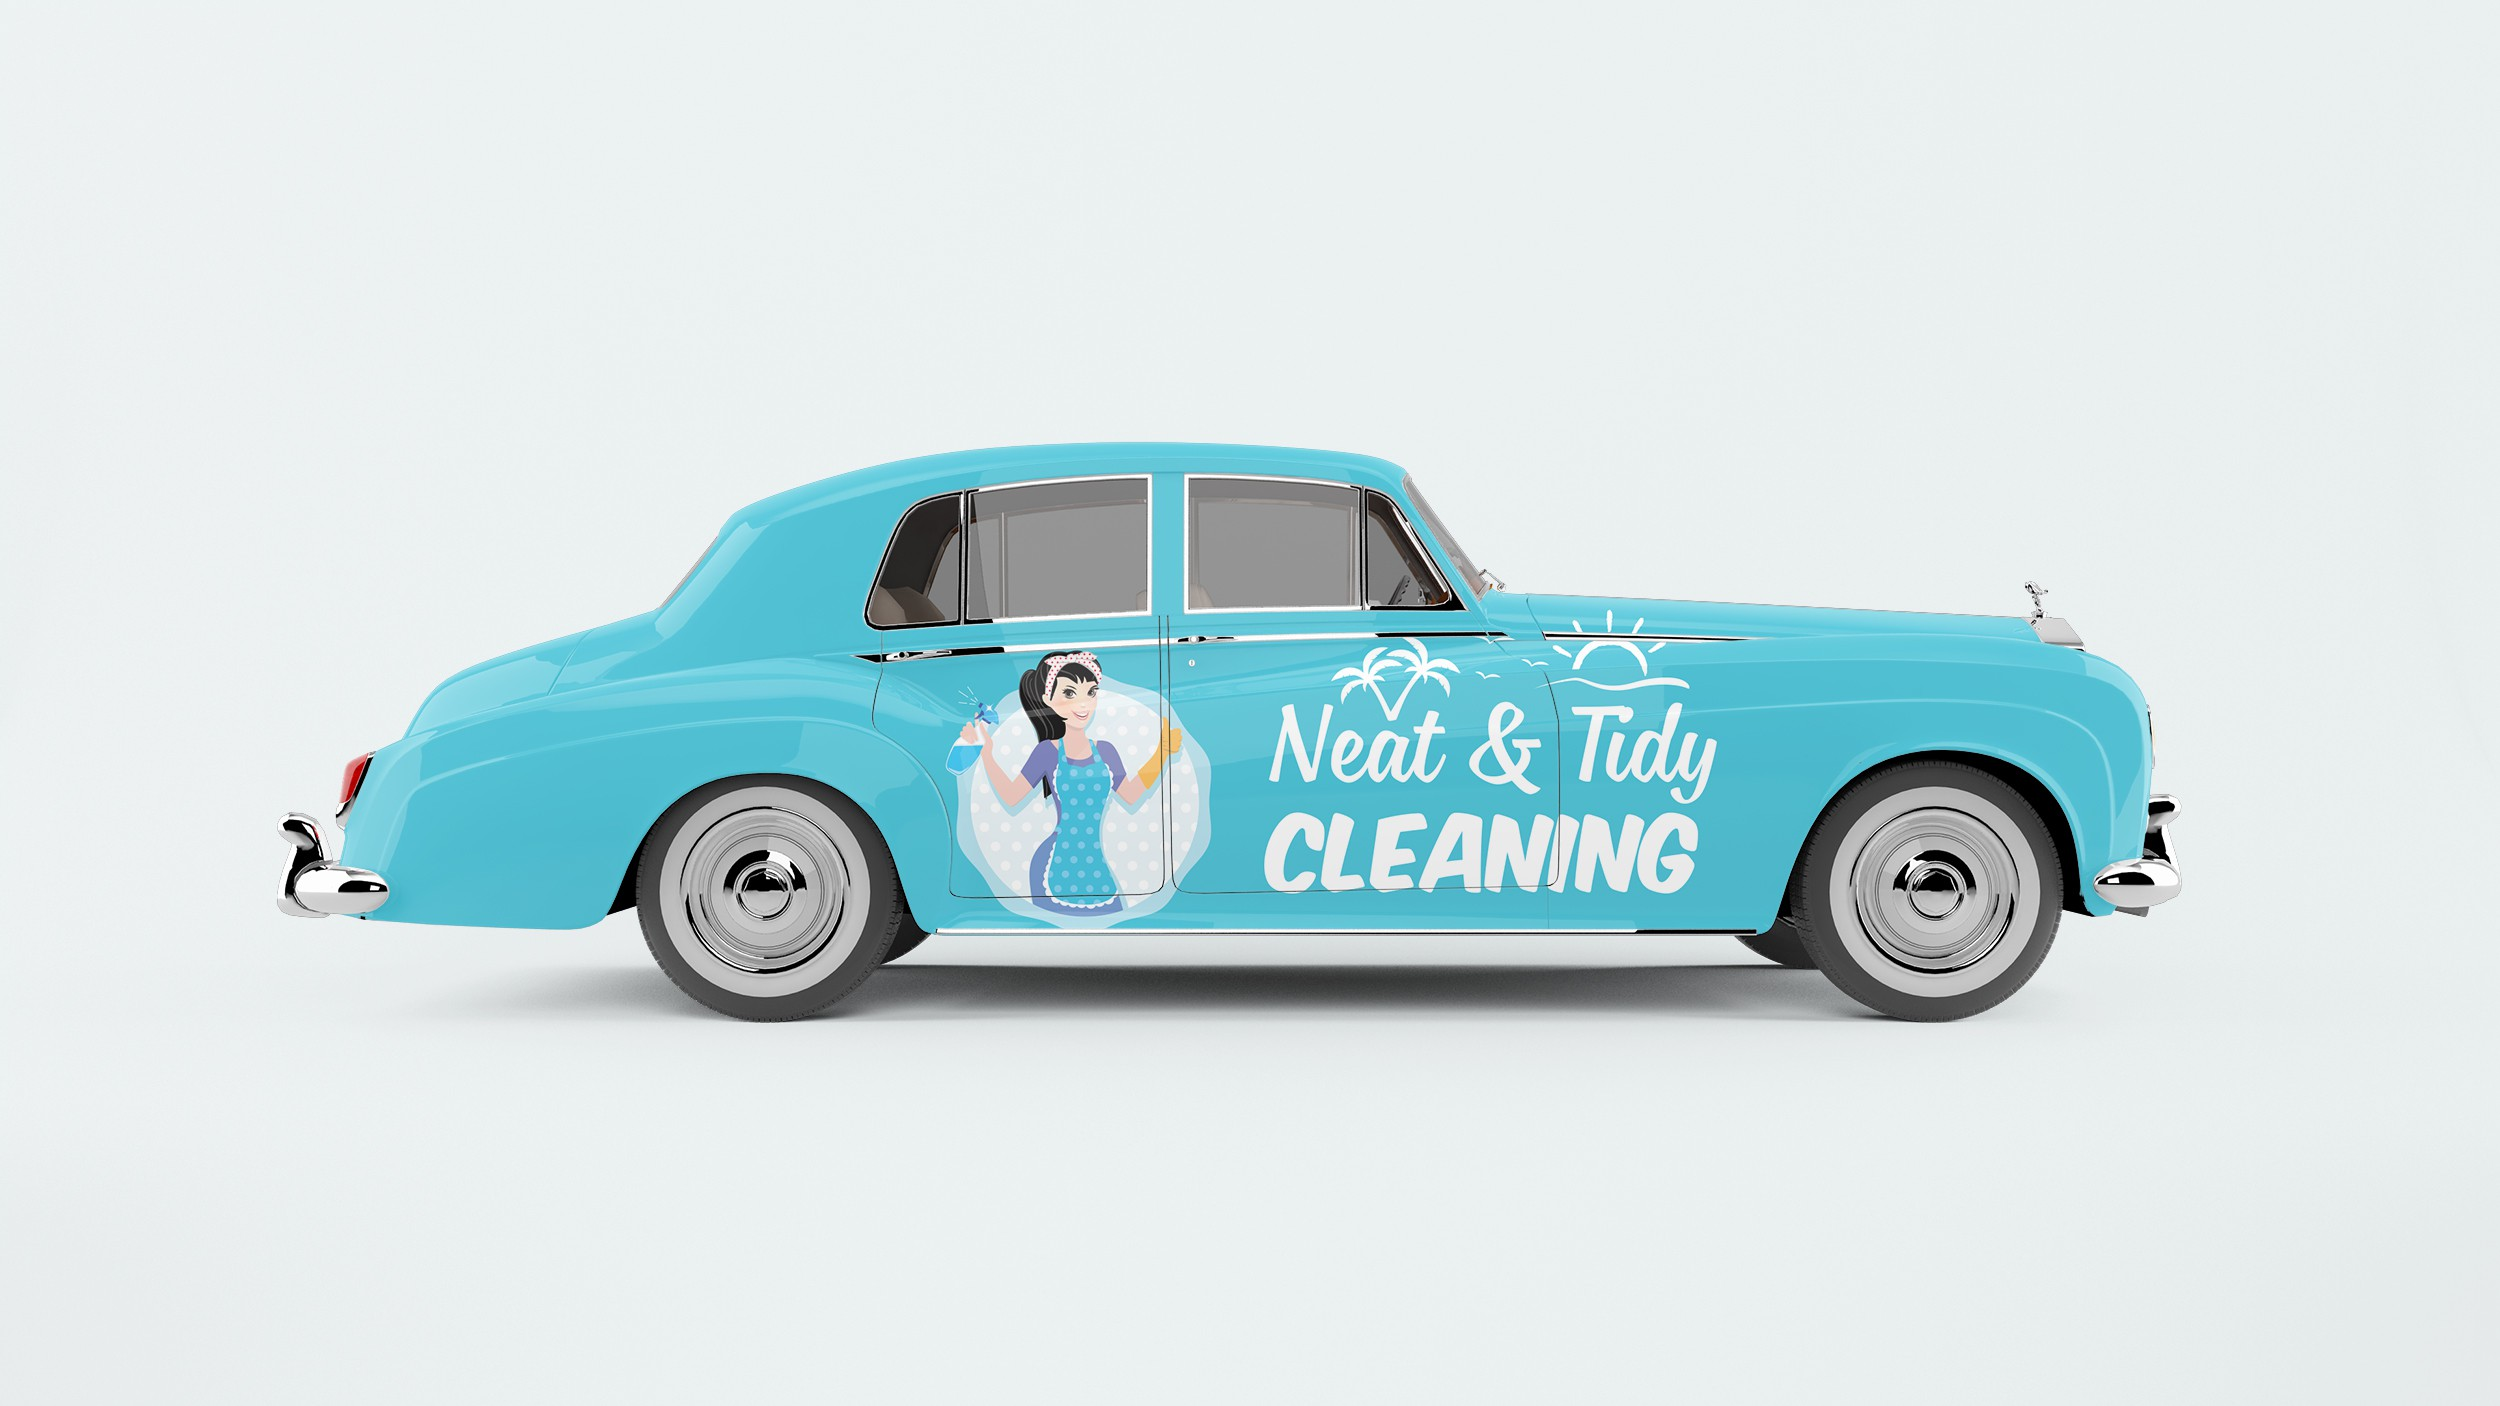 Neat & Tidy Cleaning Florida Keys